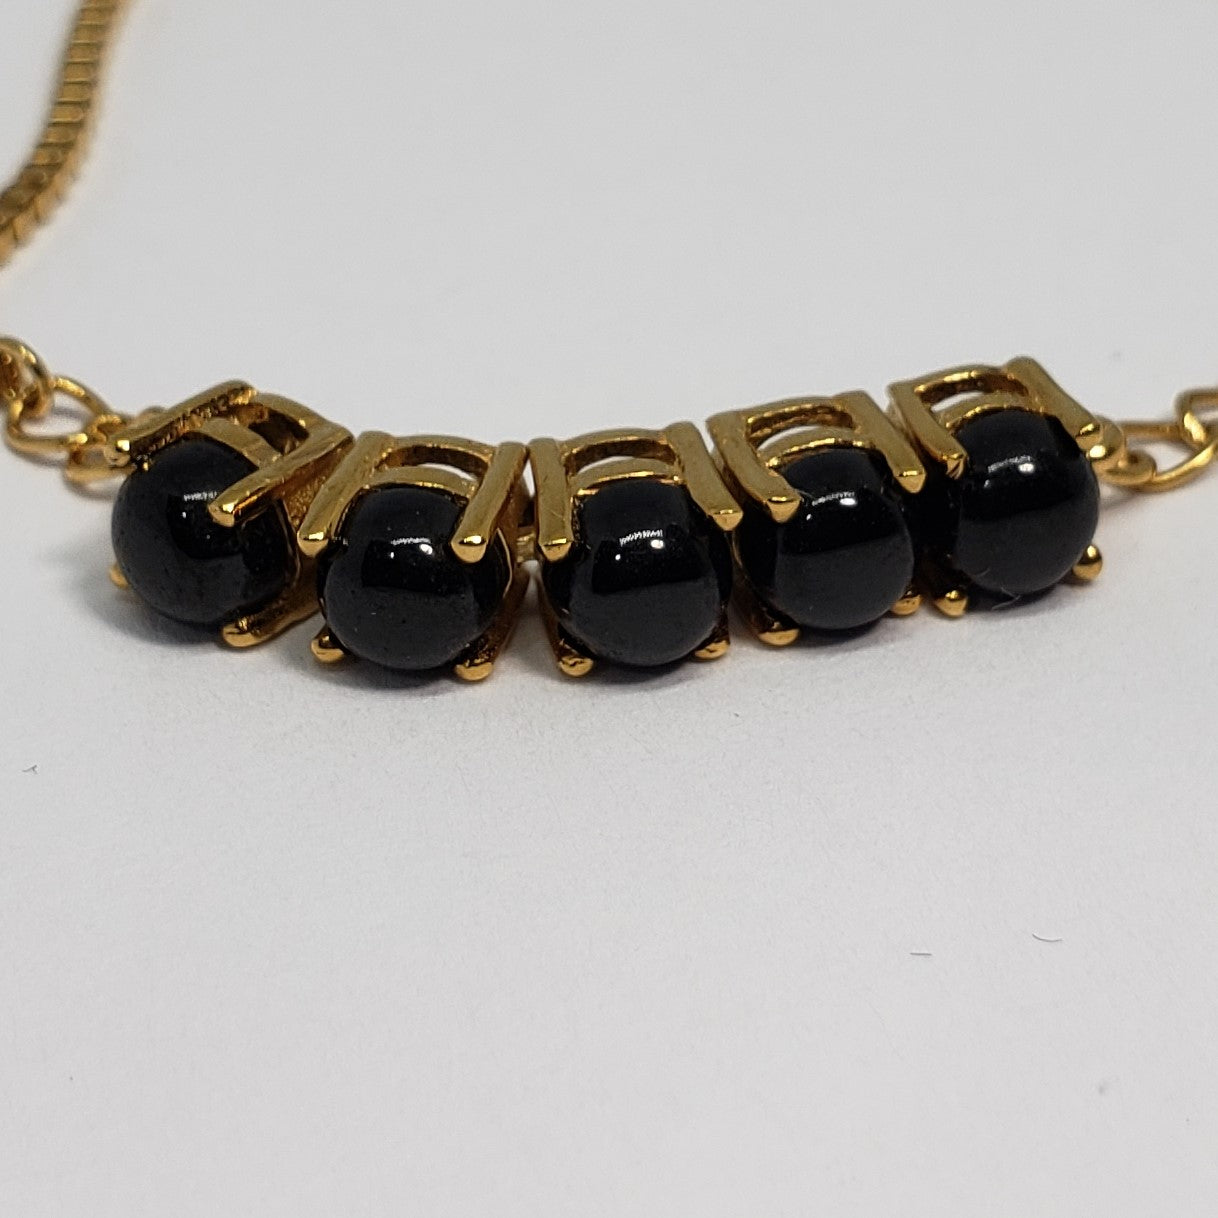 Thai Black Spinel ION Plated 18K YG Brass Cabochon Bolo Bracelet TGW 4.80 cts. - Houzz of DVA Boutique